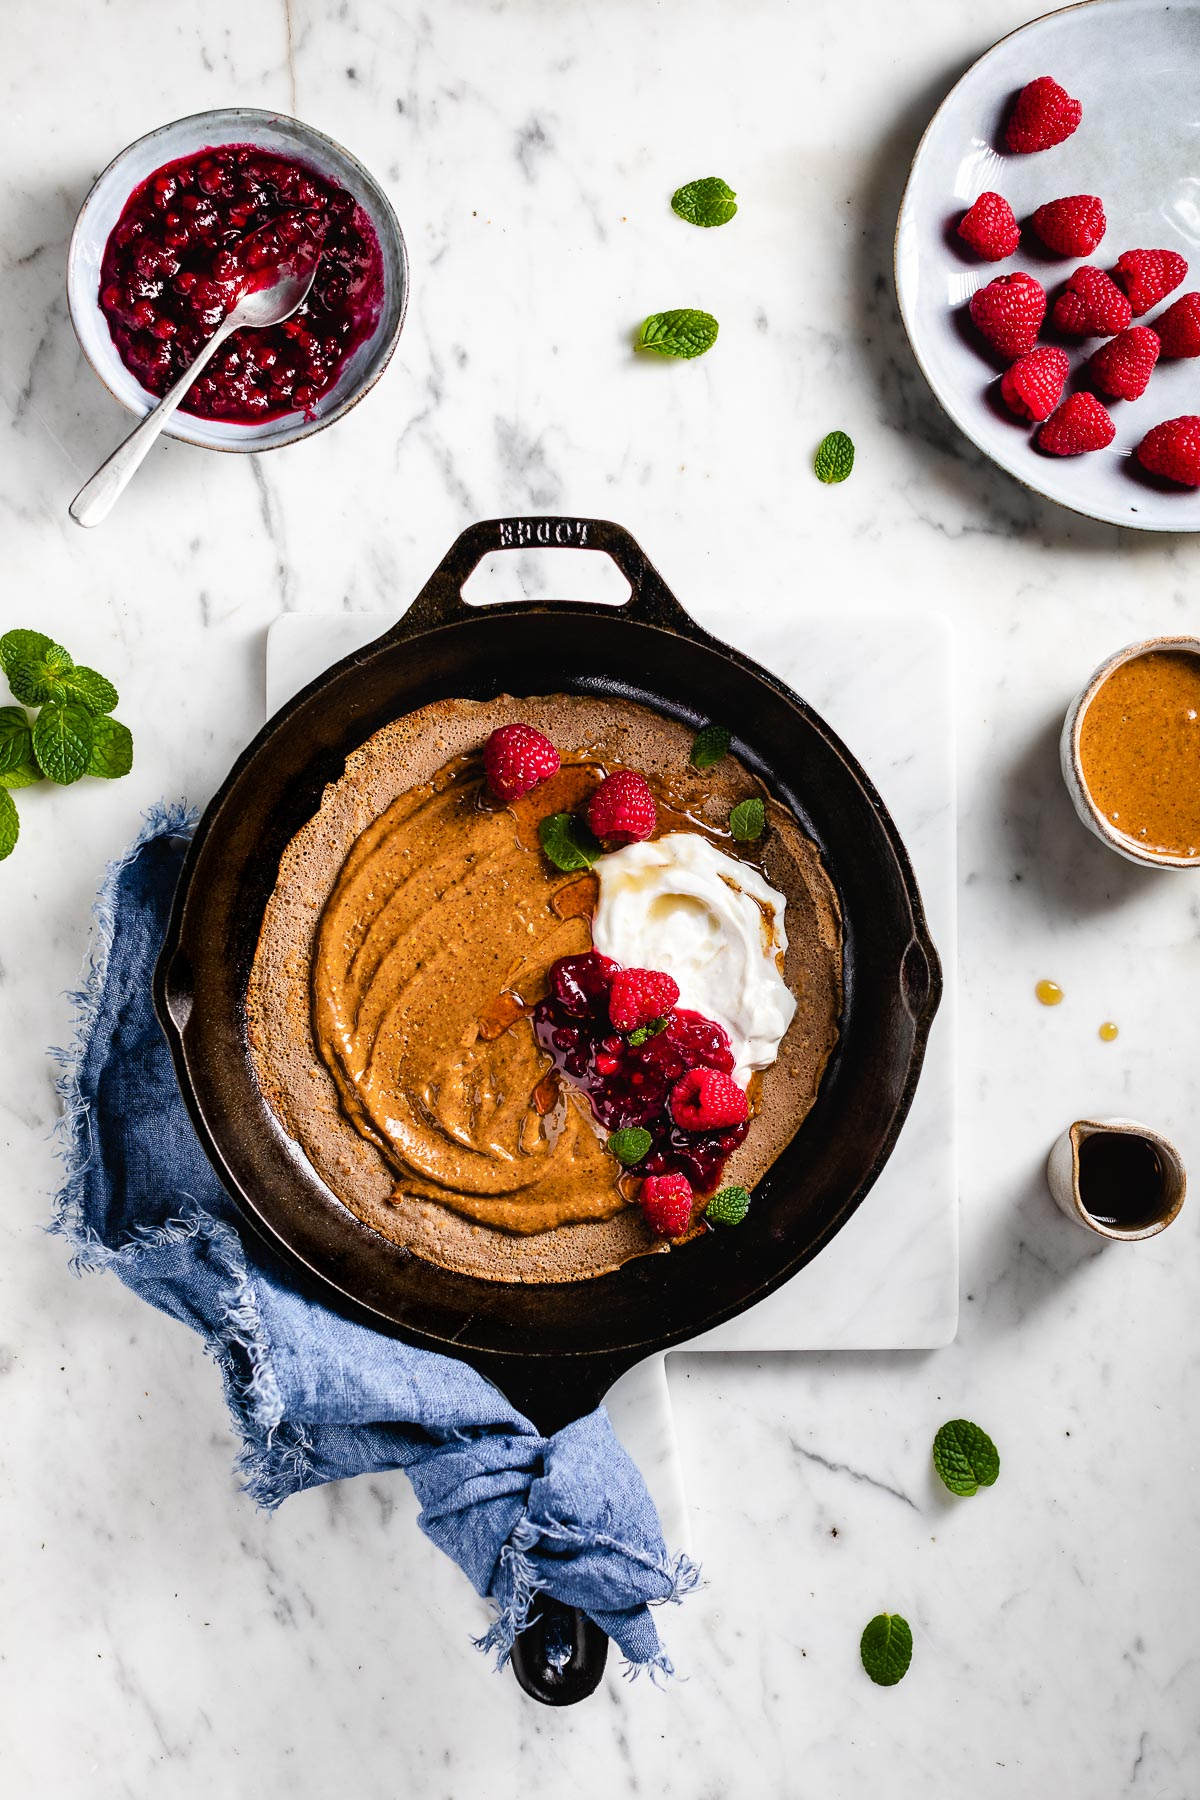 Ricetta CREPES di FARINA di CASTAGNE VEGAN senza glutine Vegan Gluten-free Chestnut Crepes recipe #healthy #crepes #photography